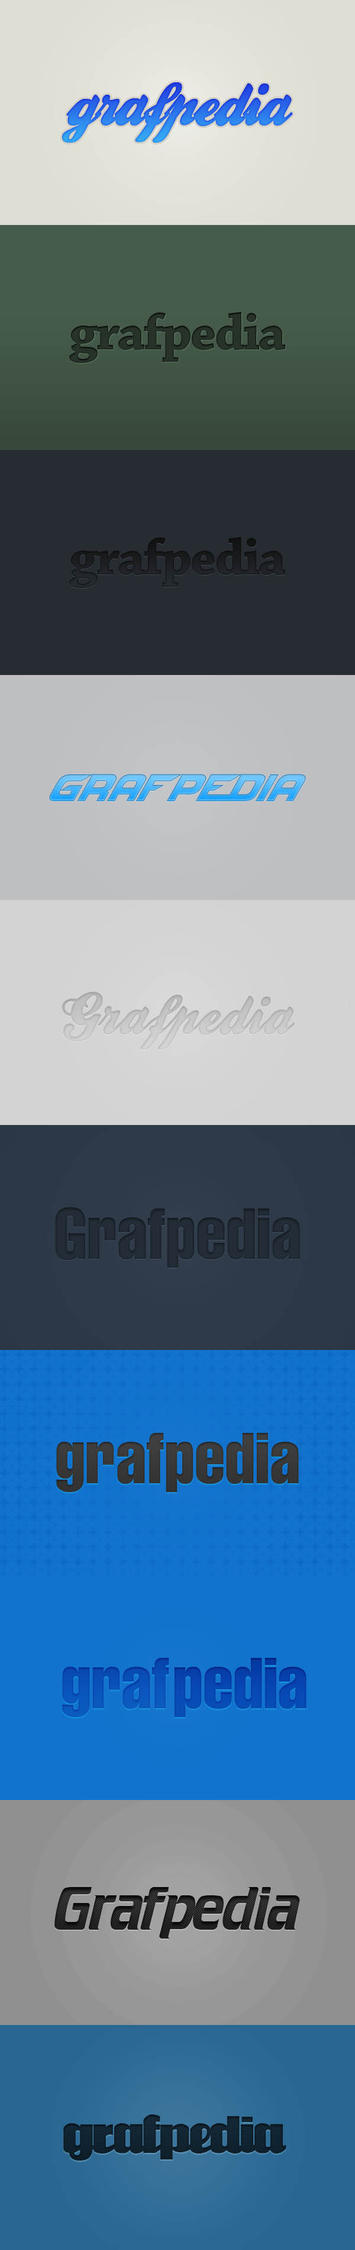 Inset shadow Layer Styles by Grafpedia